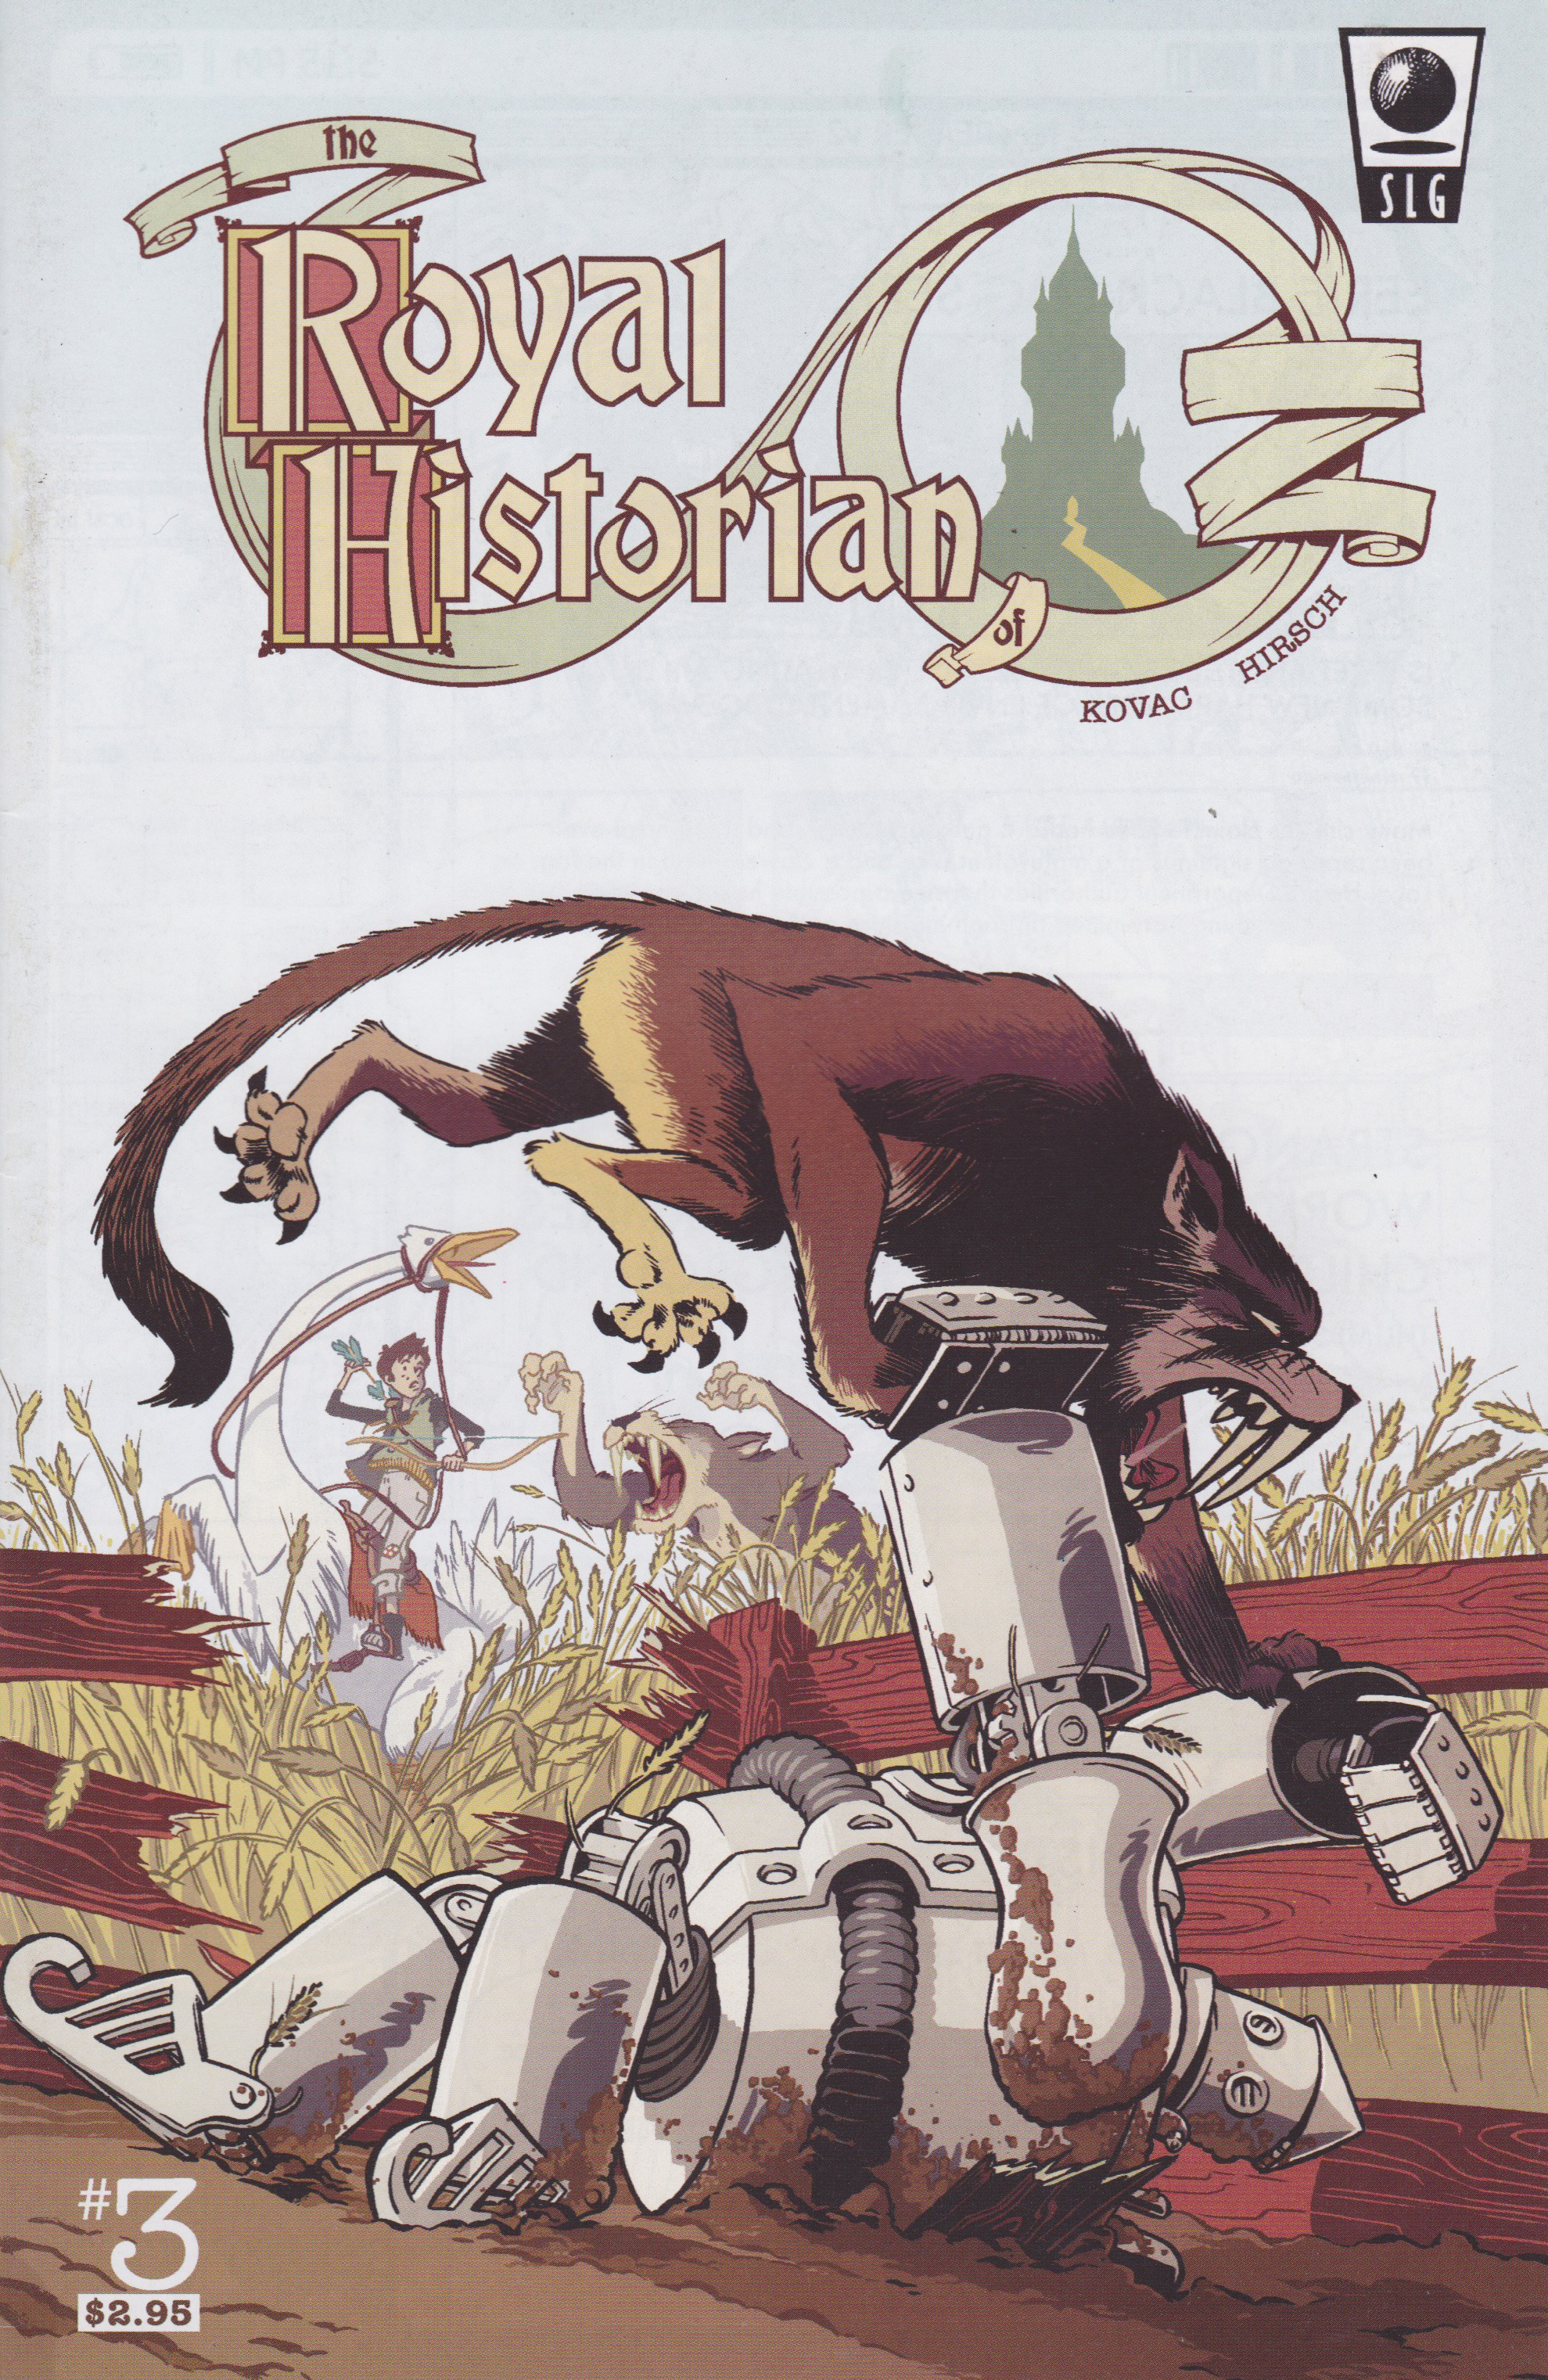 Royal Historian of Oz issue #3